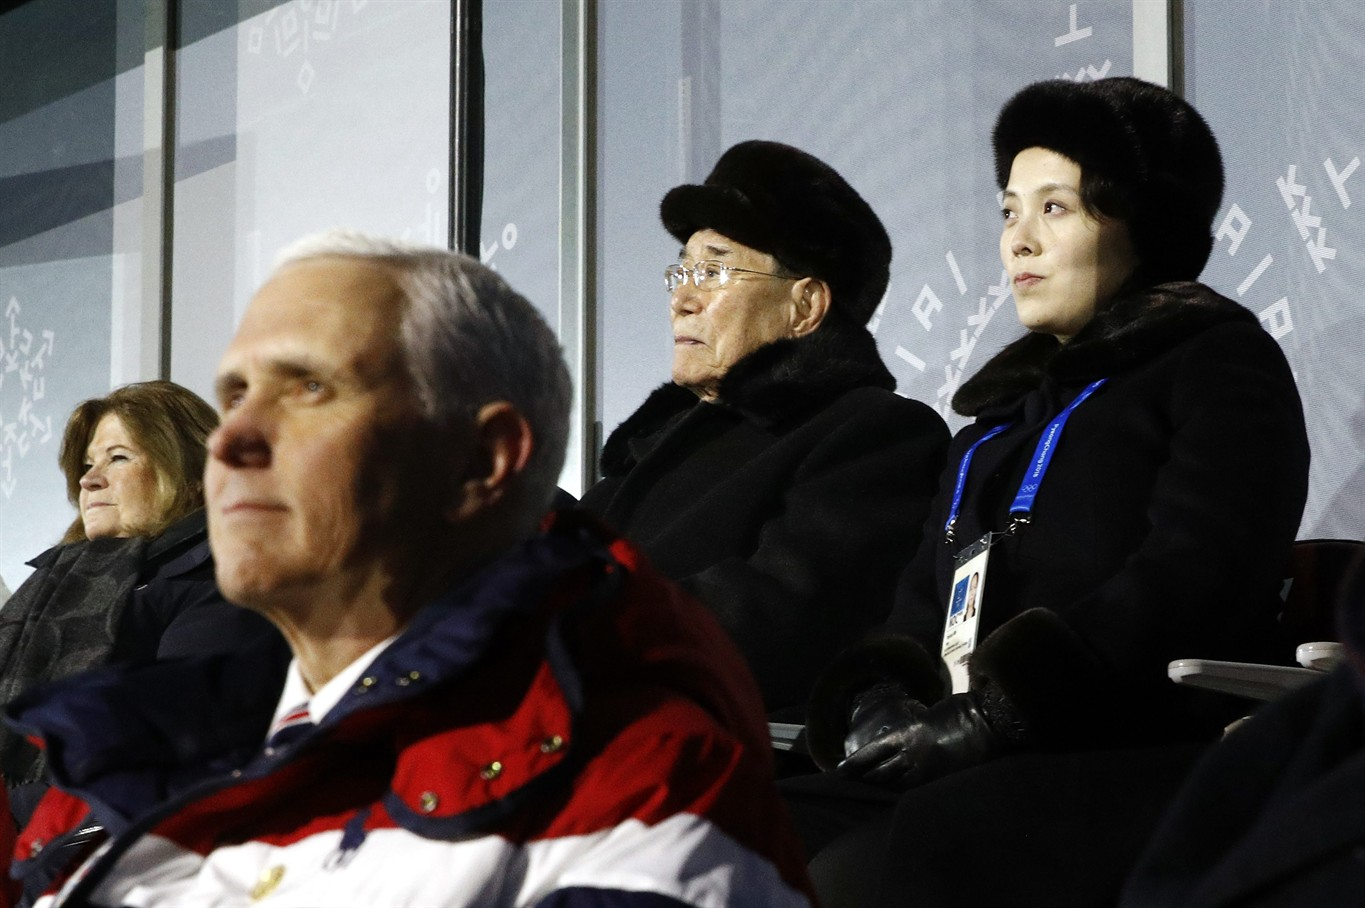 Mike Pence briefly meets North Korean official at Olympic reception